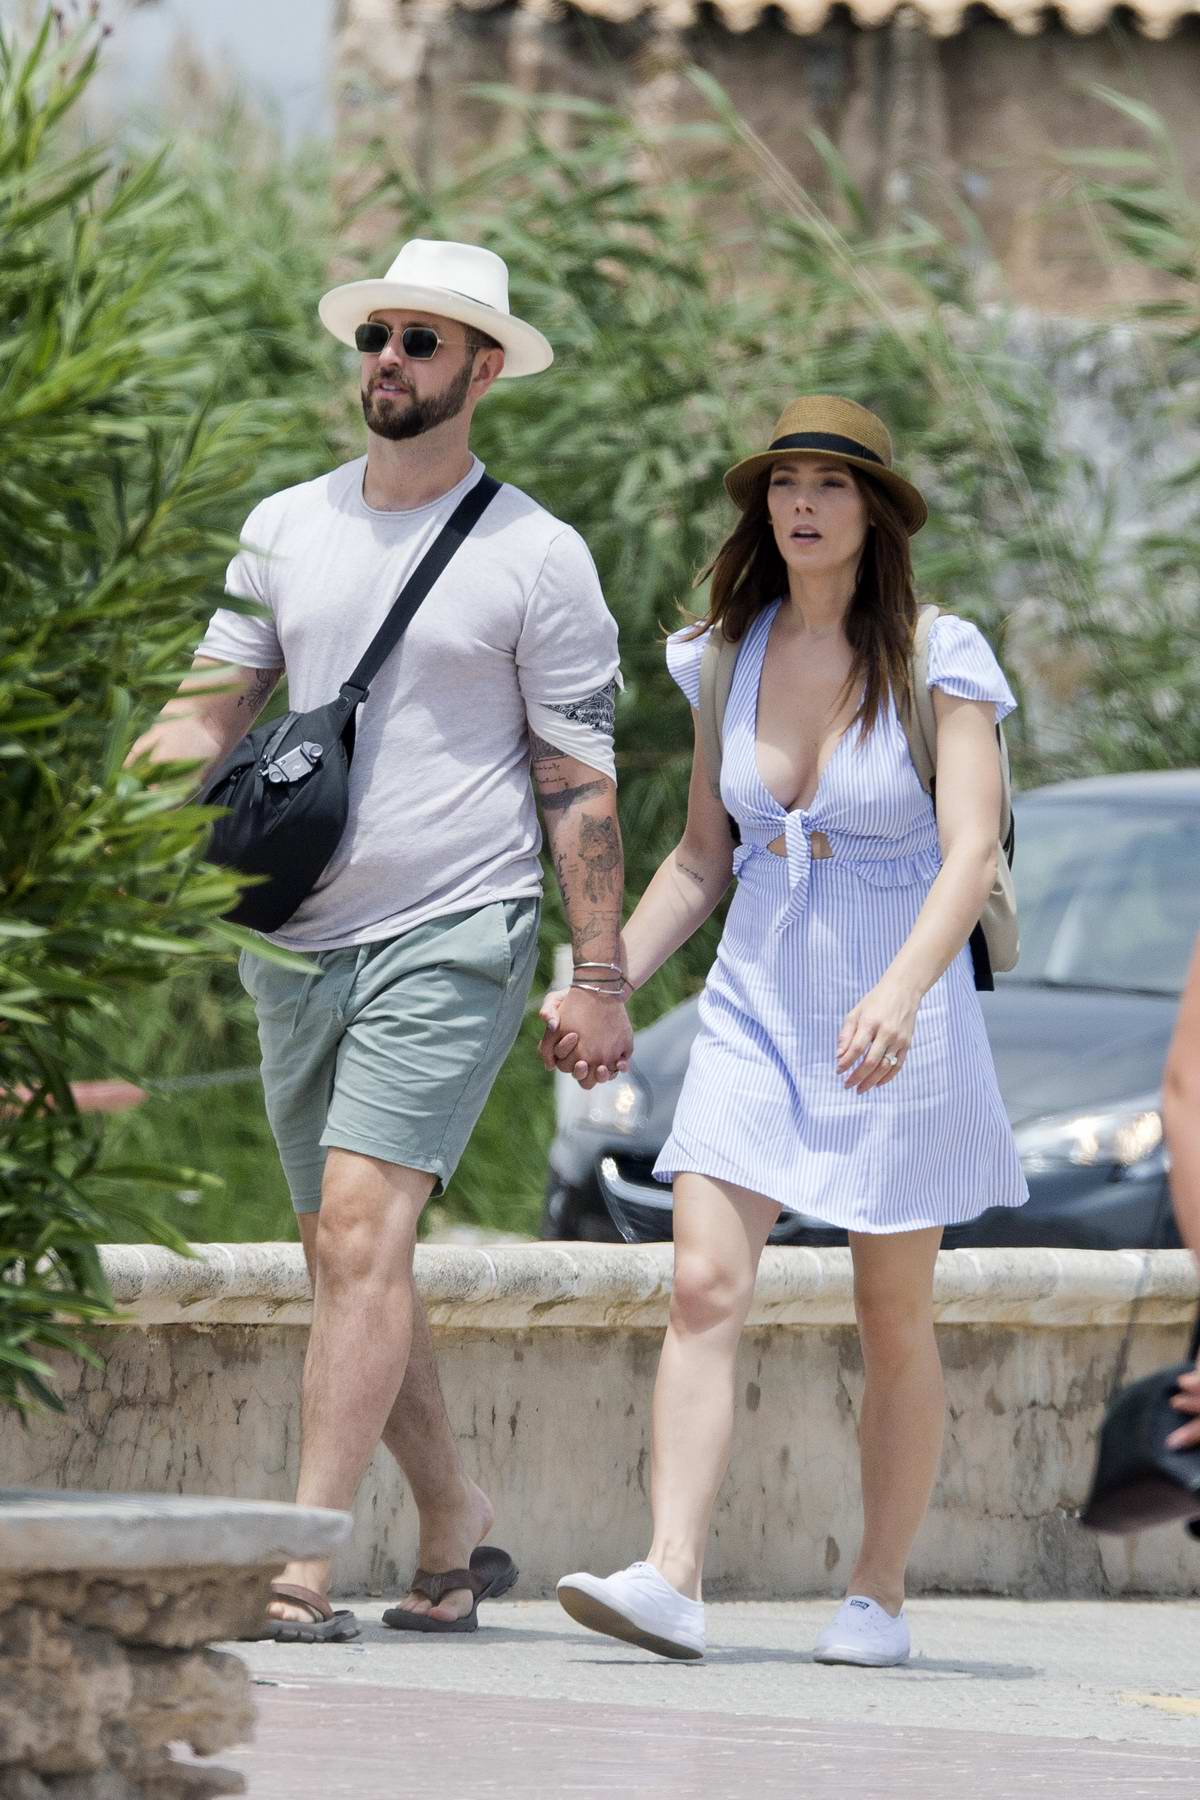 Ashley Greene and Paul Khoury stepped out for some sightseeing in Ibiza, Spain